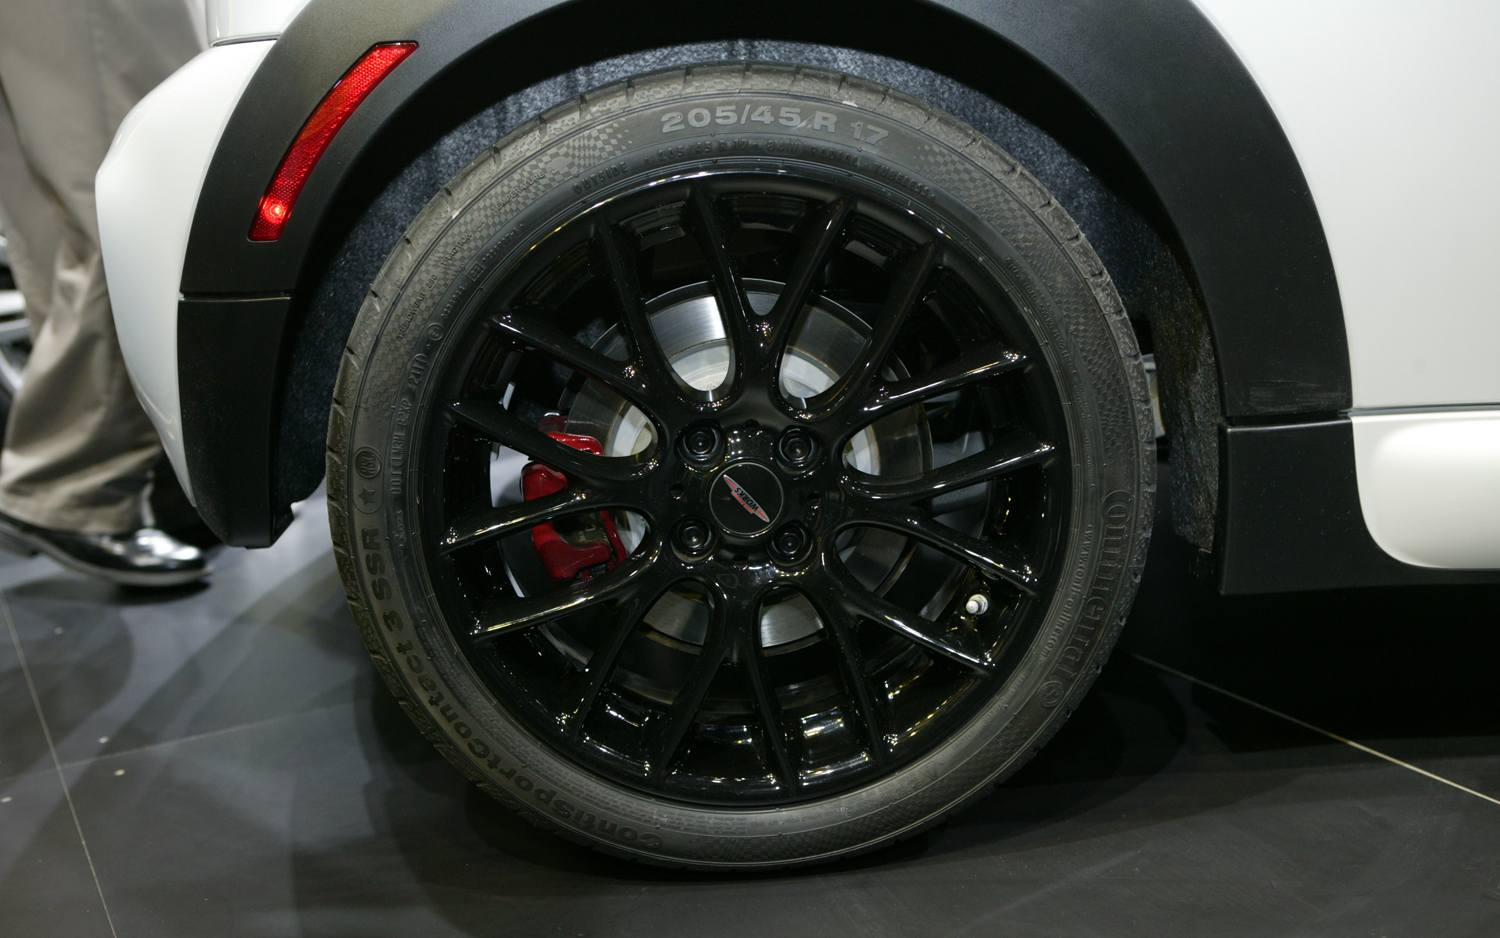 MINI Cooper Roadster wheels #4